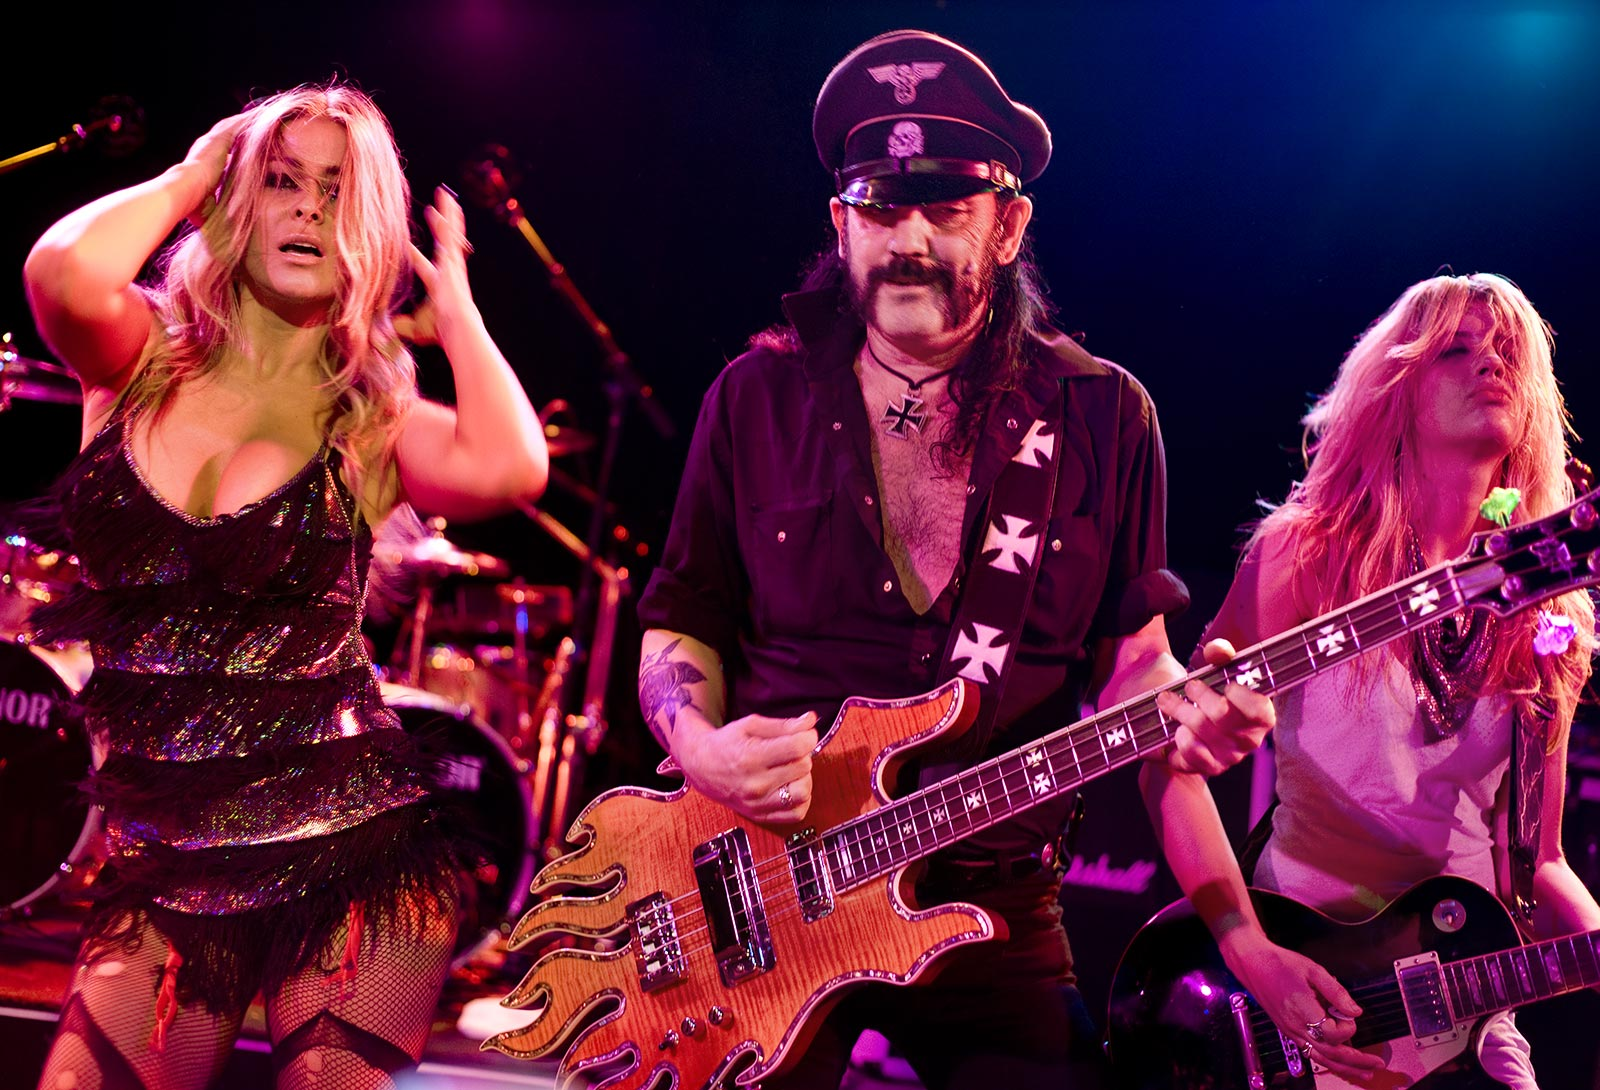 Carmen_Electra Lemmy_Kilmister Allison_Robertson Chelsea_Girls los_angeles_music_photographer los_angeles_band_photographer los_angeles_live_music_photographer music_photography